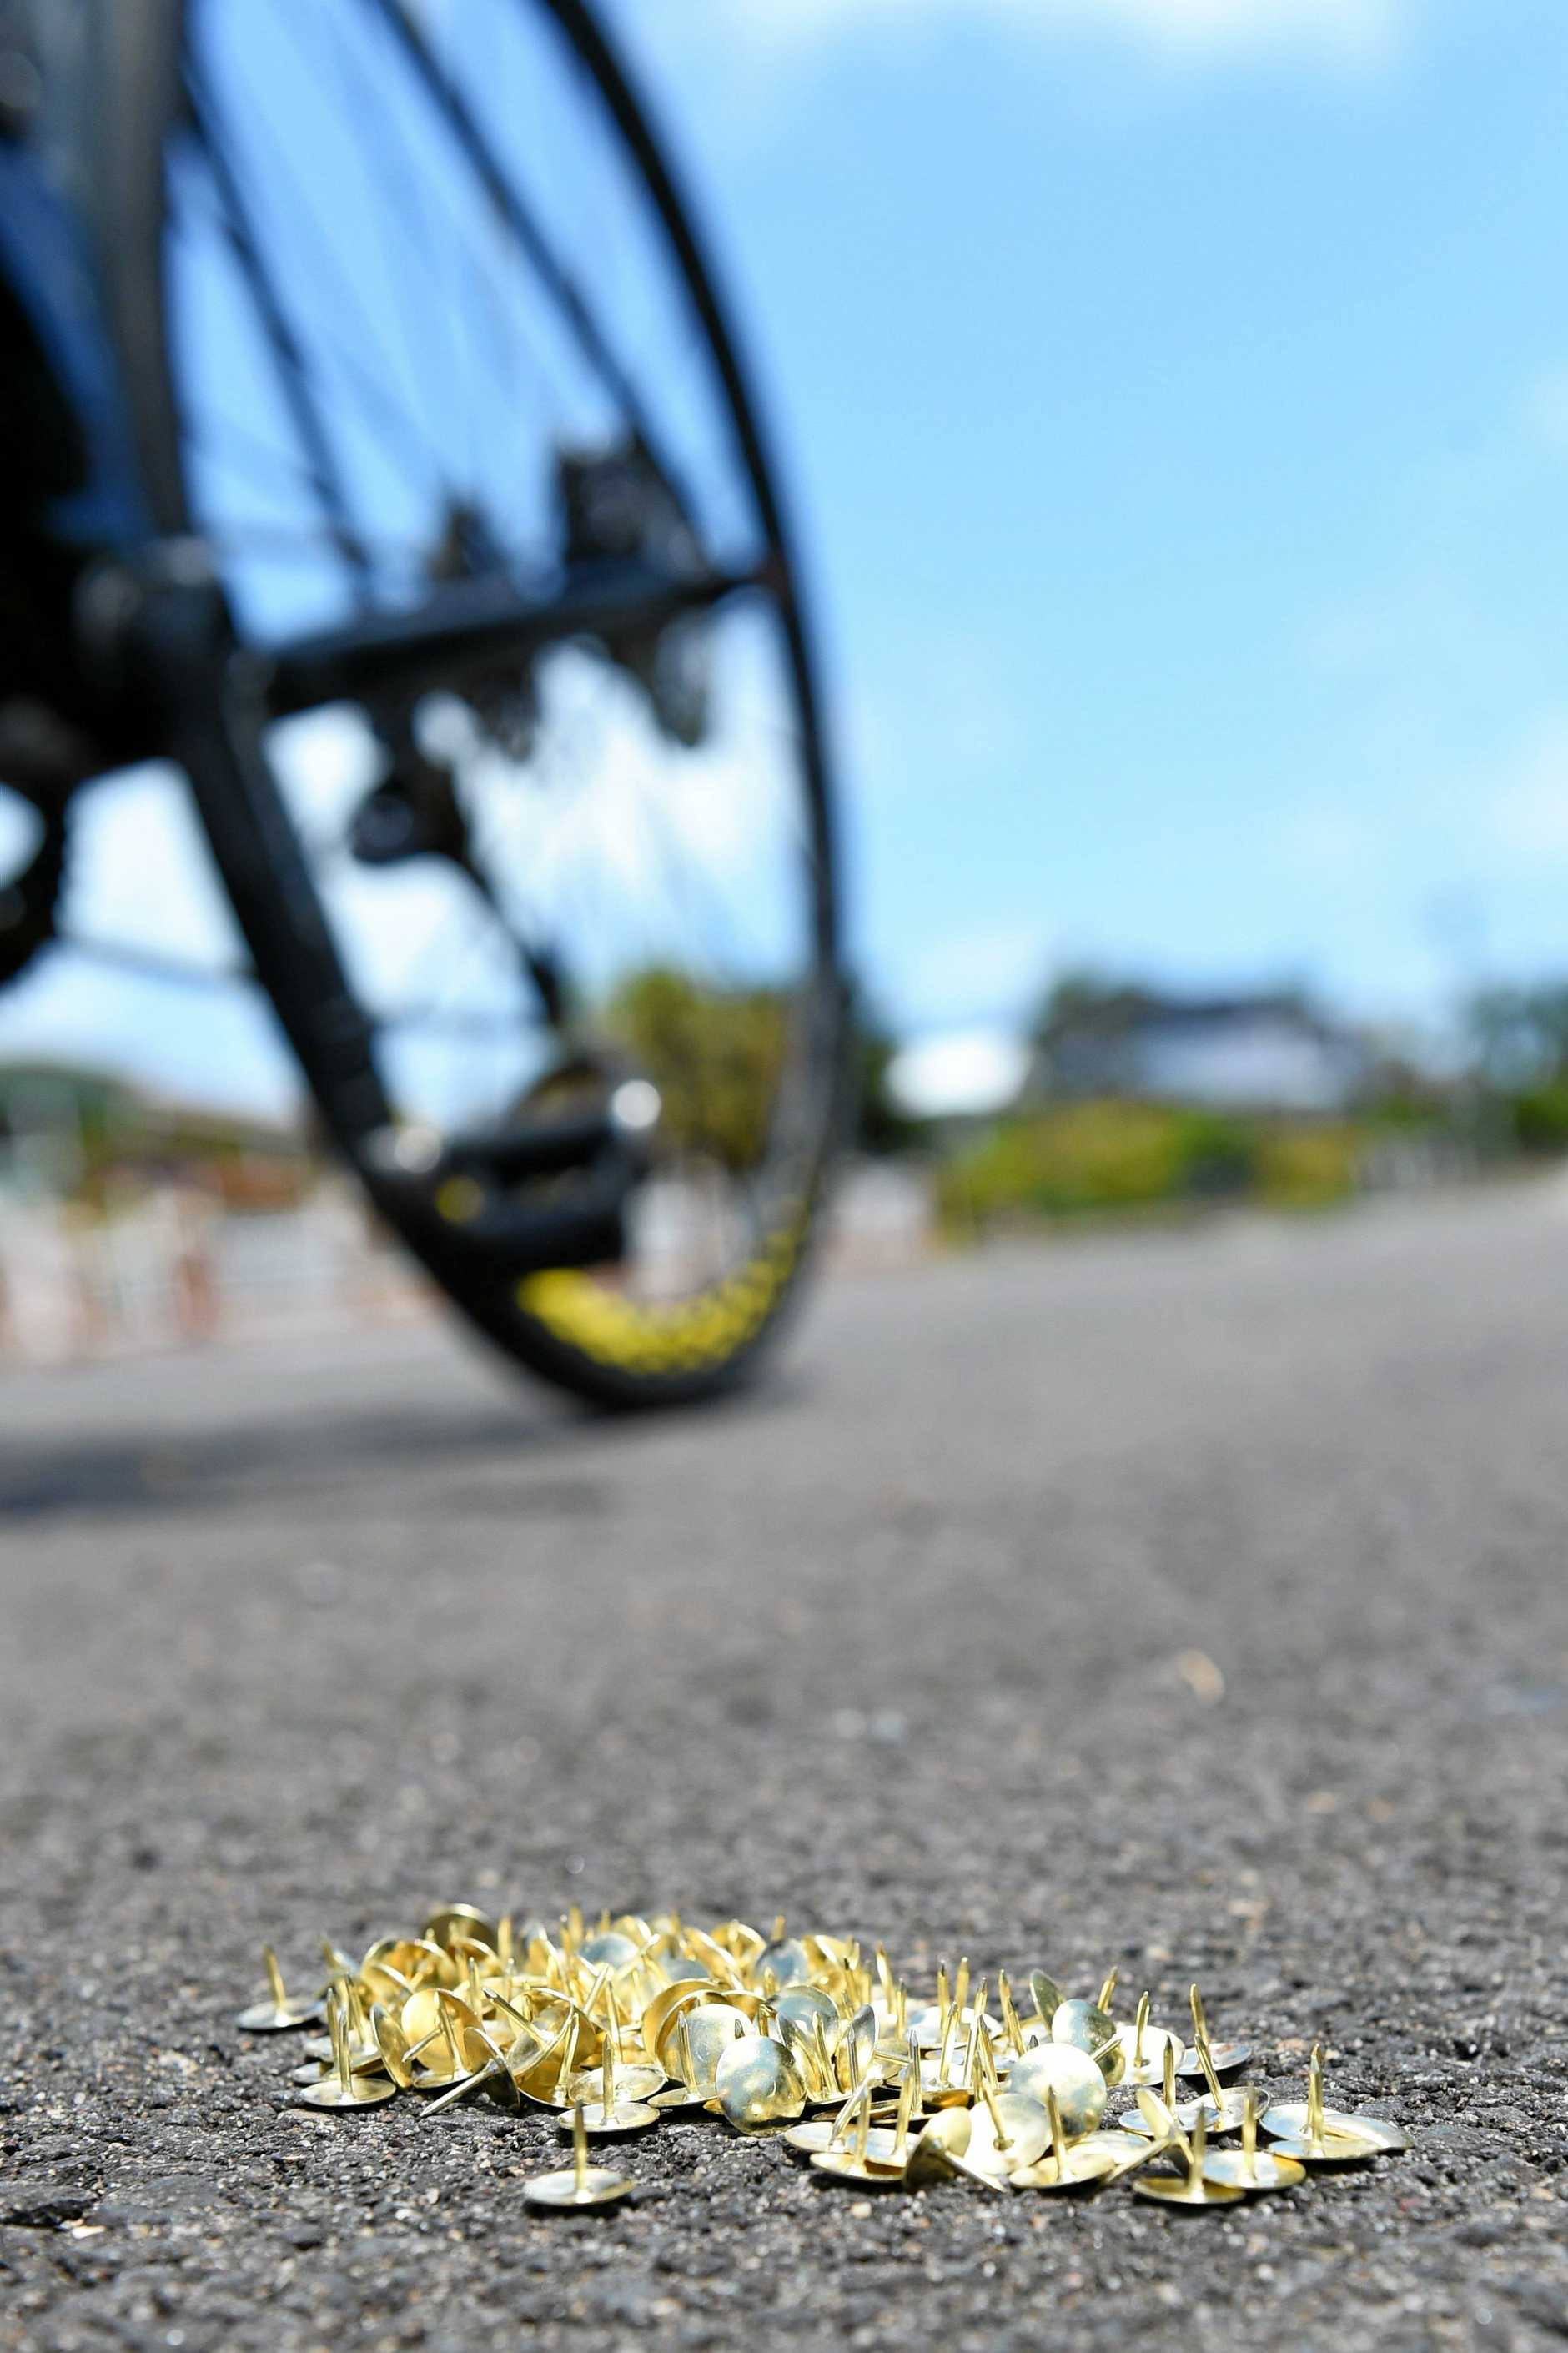 Point Vernon athlete Peter Clatworthy was riding with his wife early Wednesday morning when they came across about 80 tacks on the Esplanade.